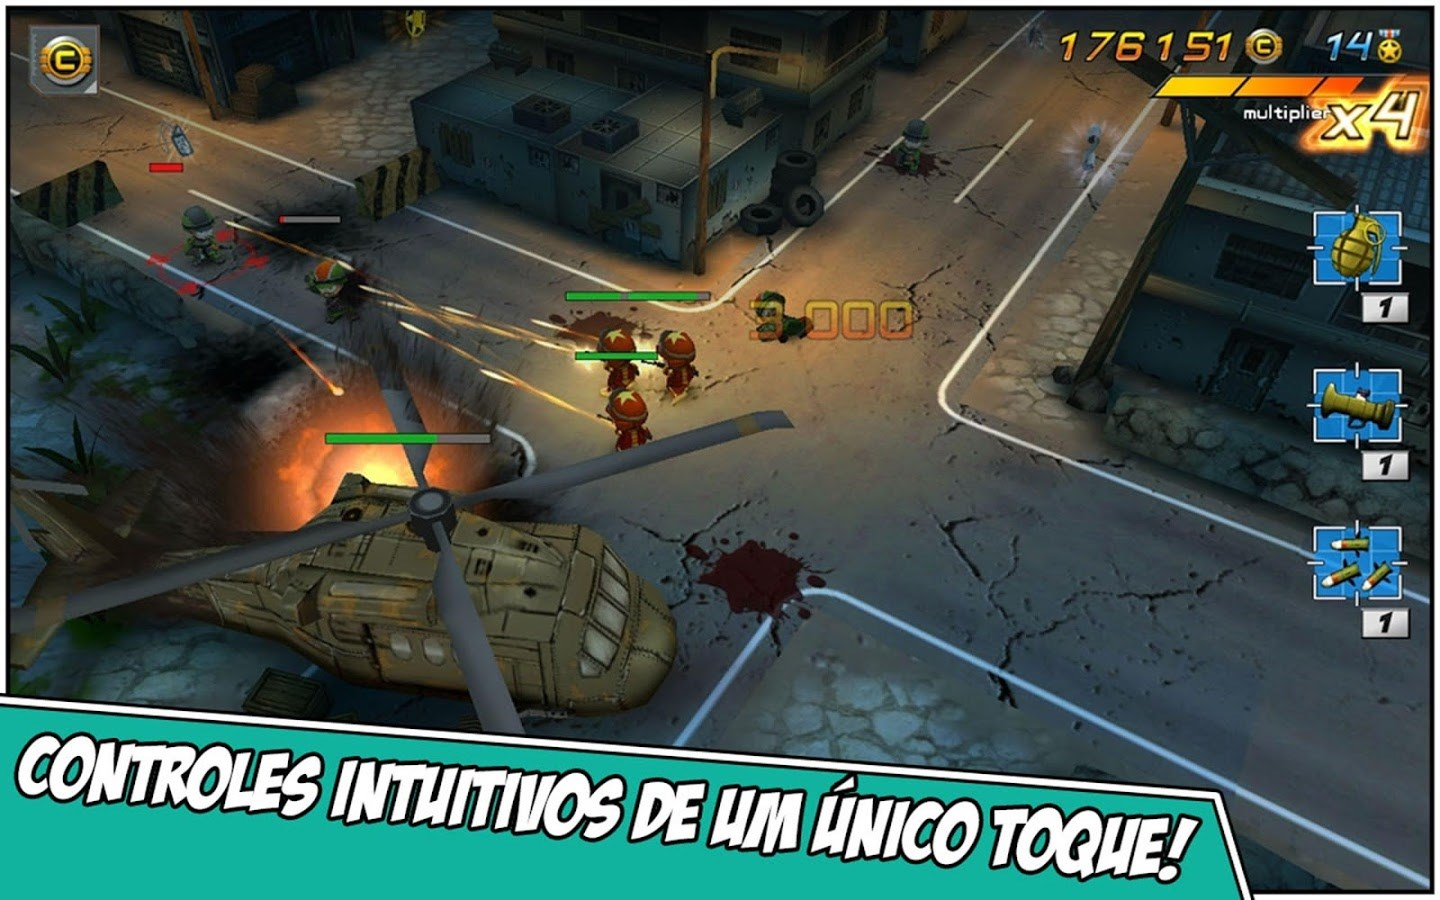 Tiny Troopers 2: Special Ops - Imagem 1 do software